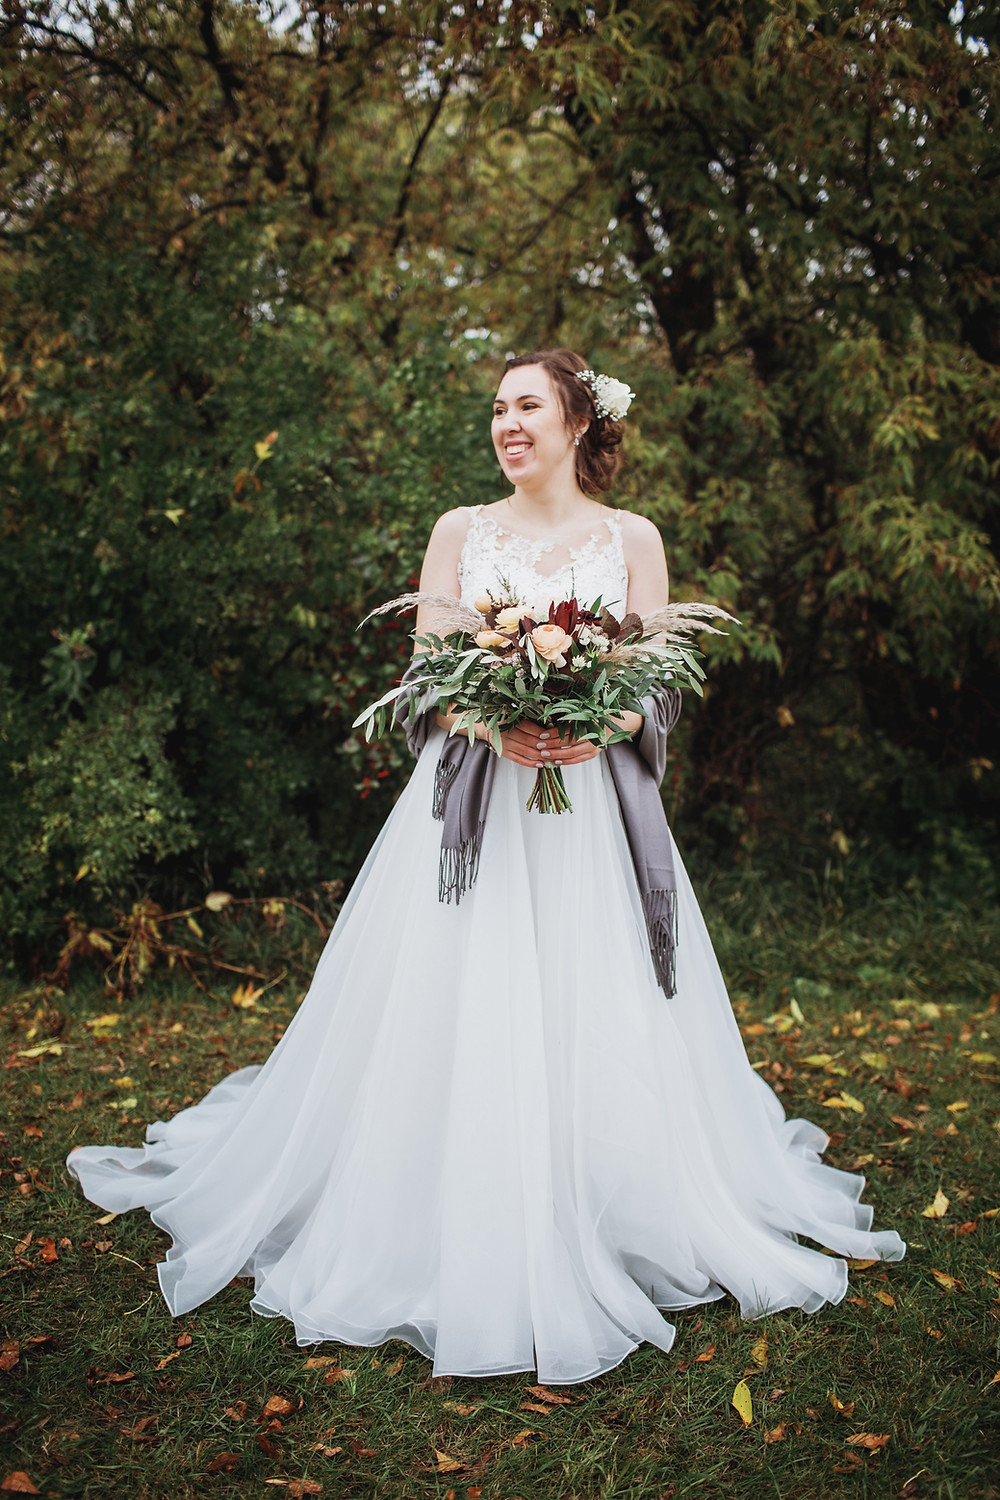 Smiling bride during her rainy fall wedding